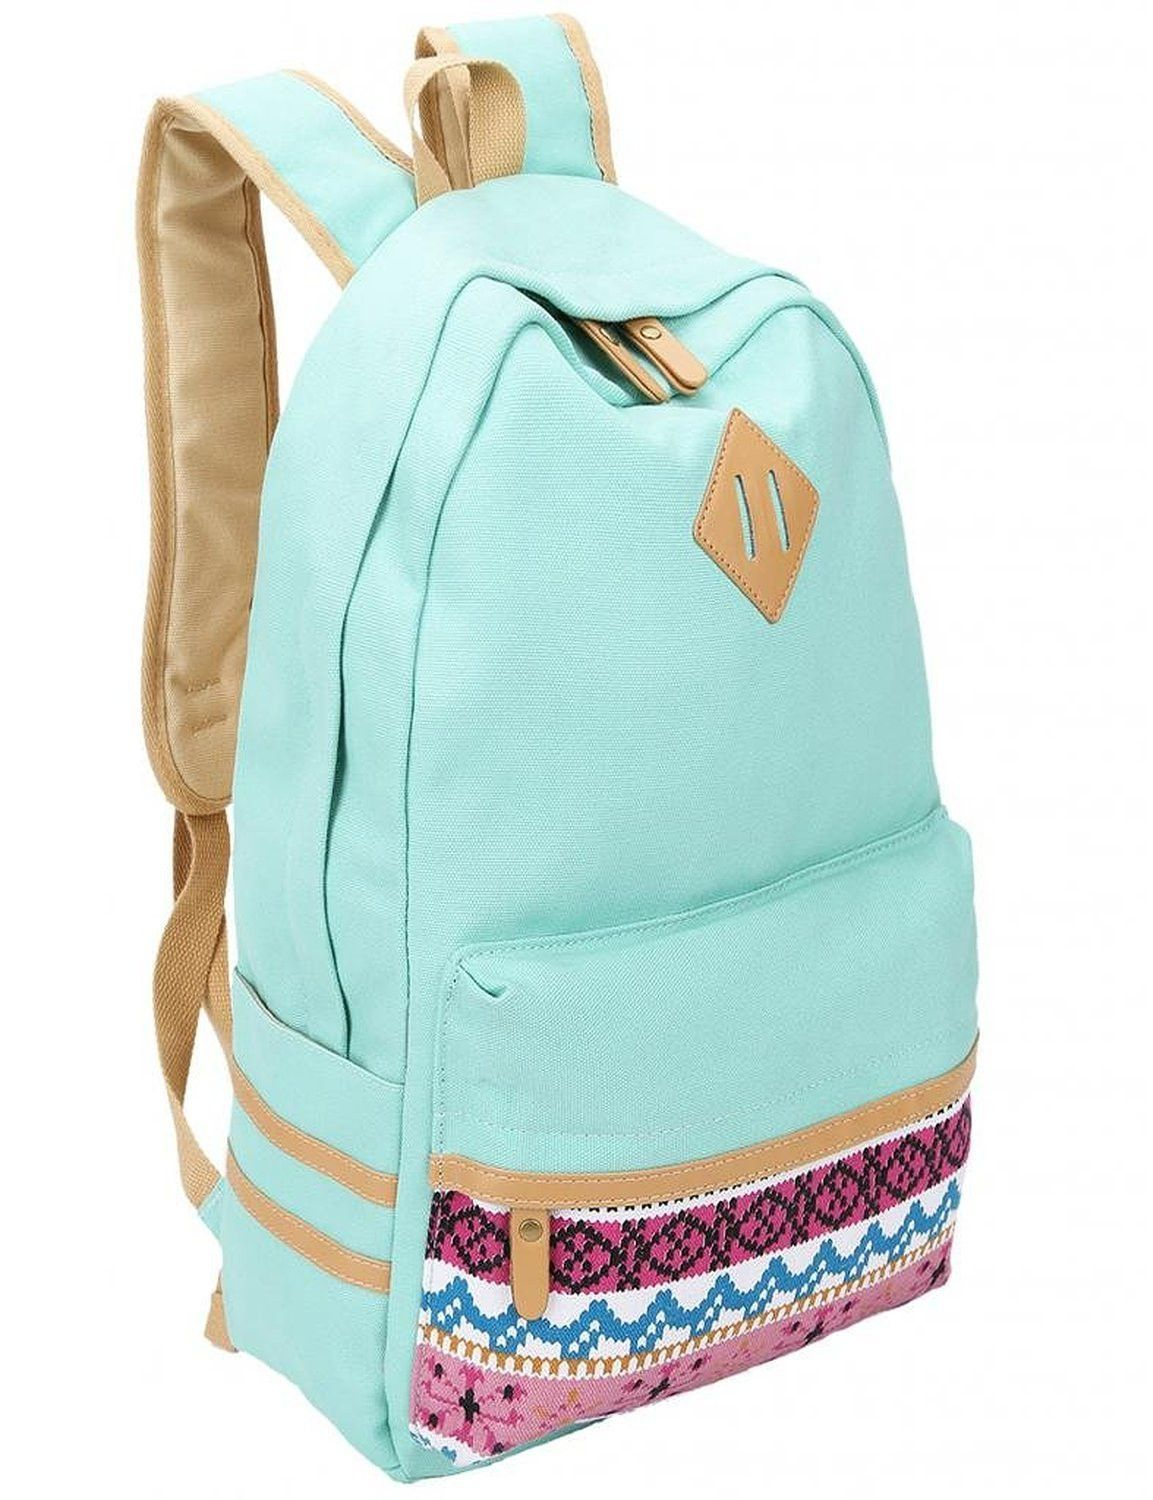 27 best Backpacks for girls images on Pinterest | Backpacks for ...